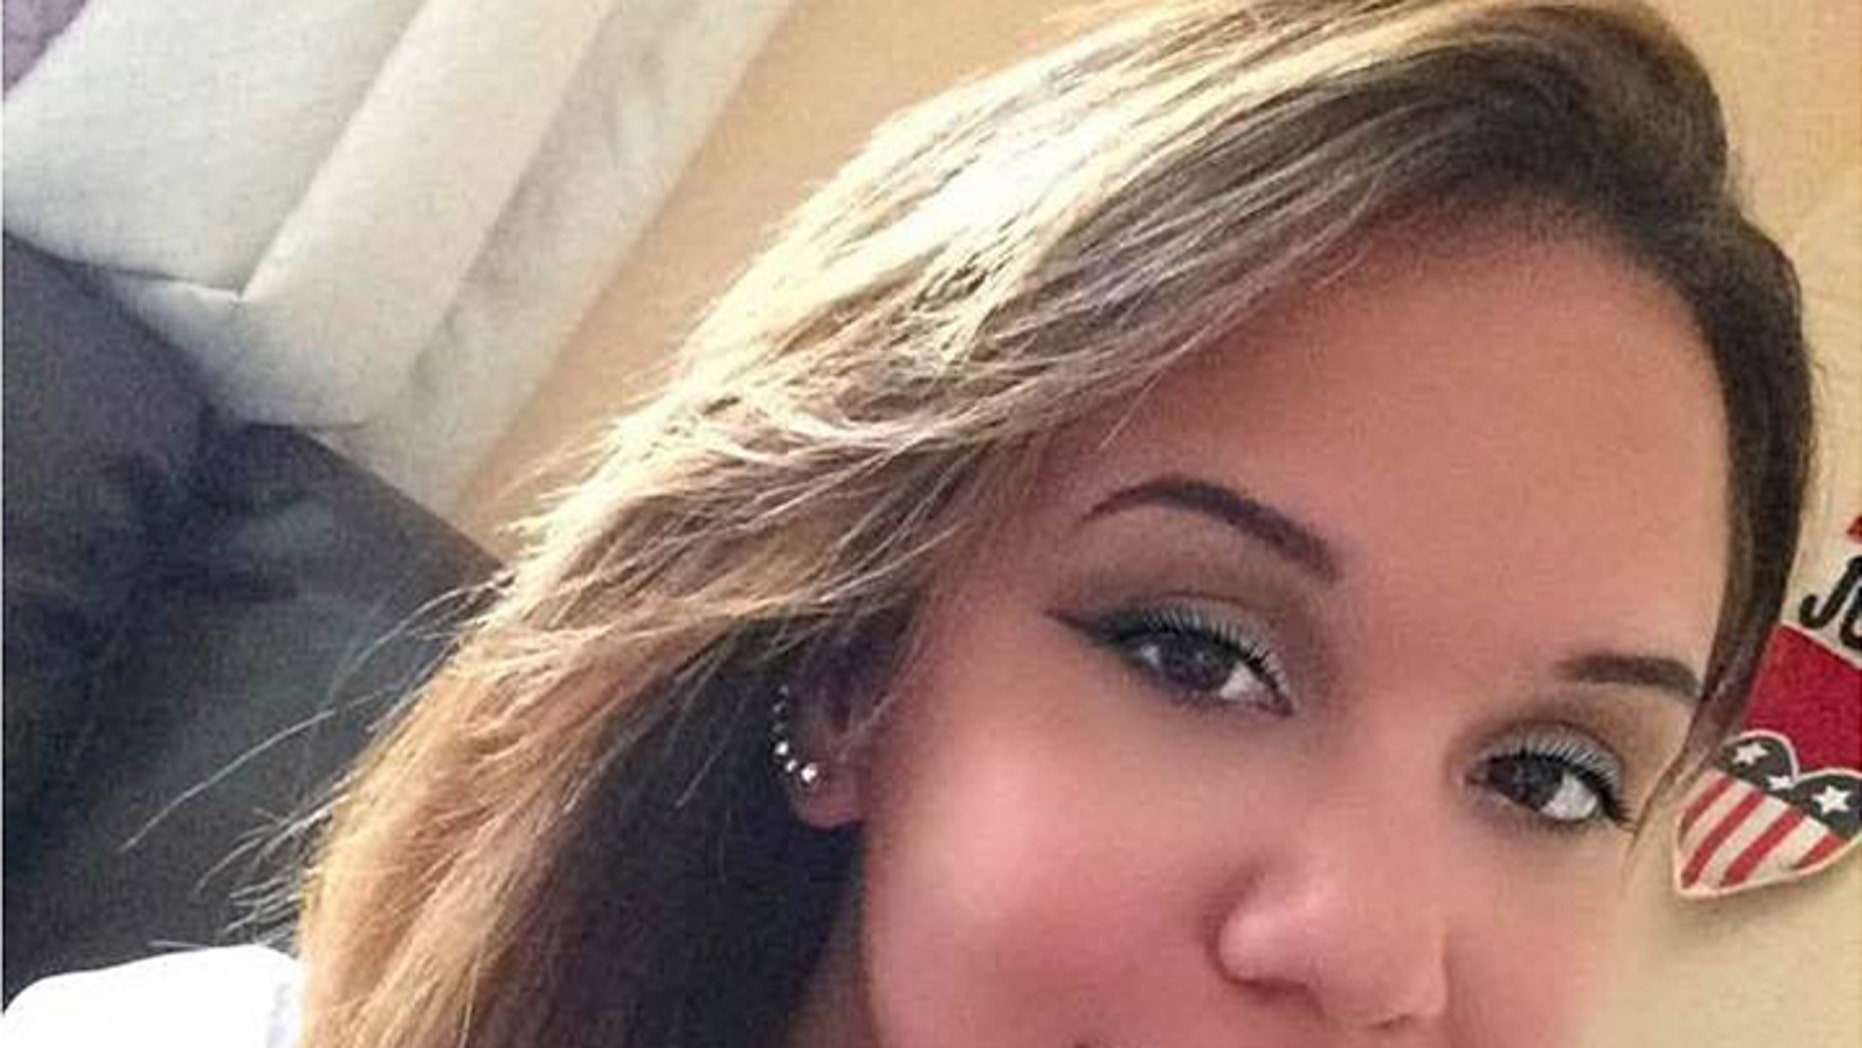 Police ID'd the dismembered human remains found in plastic bags in two separate Bronx parks as 25-year-old Lisa Marie Velasquez.